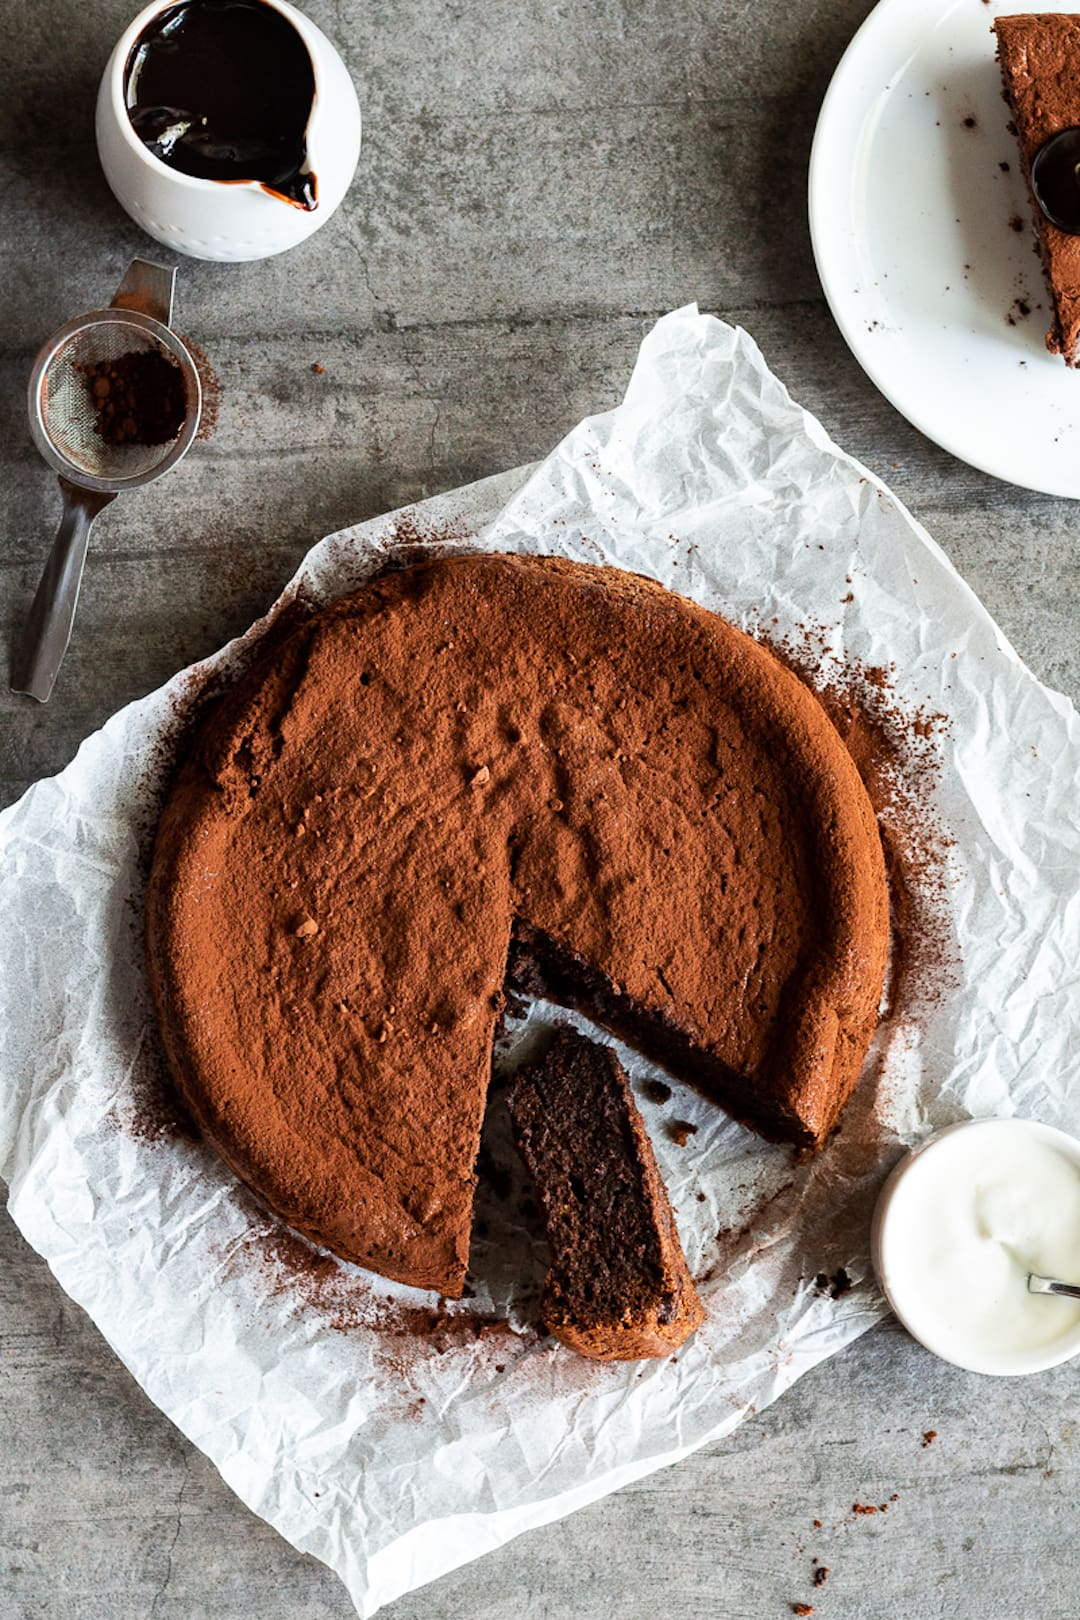 flourless chocolate cake on a parchment paper and wood board background